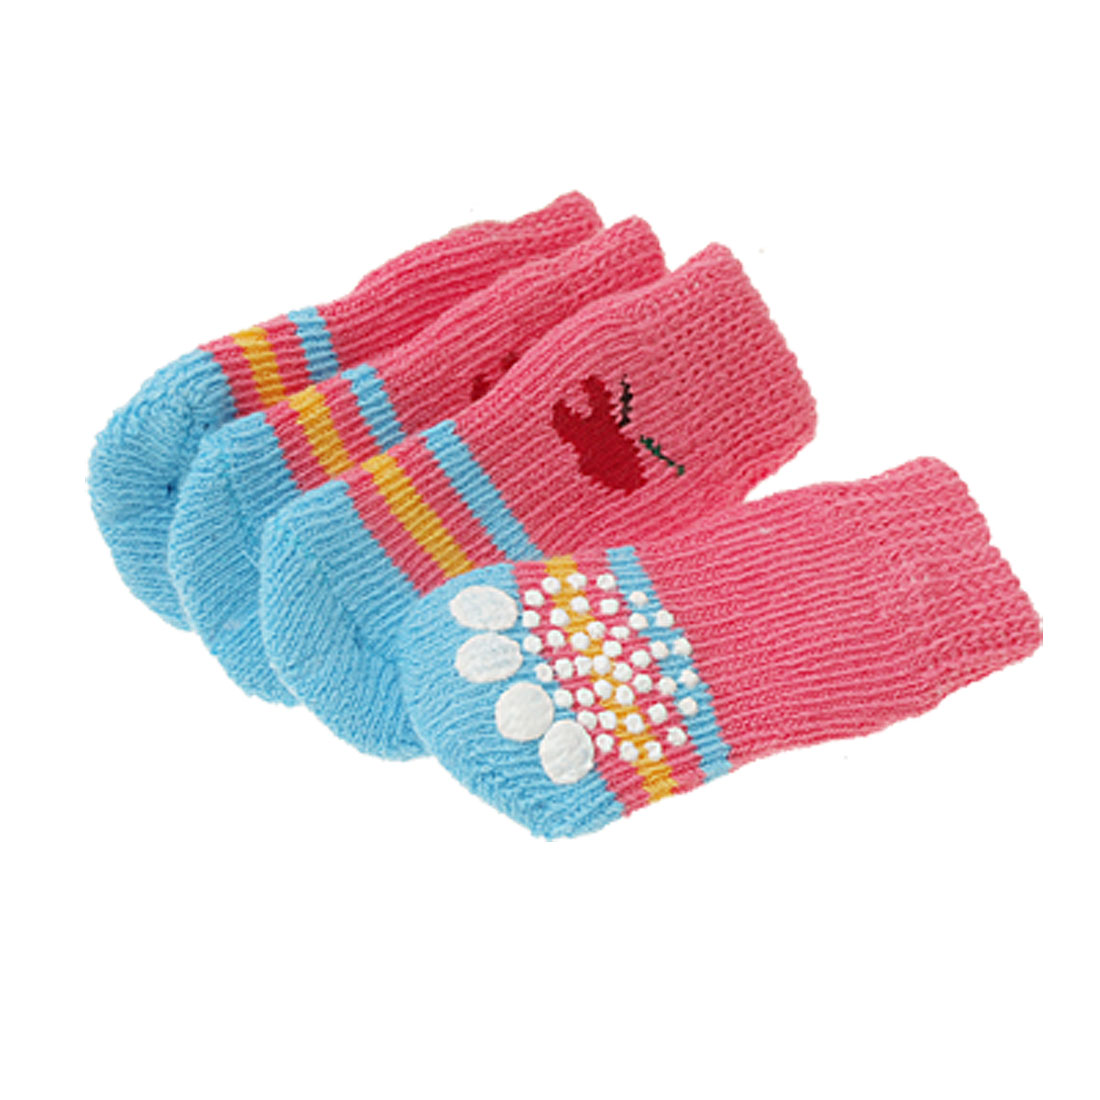 L6.5 x W3.5cm Puppy Dog Doggie's Winter Nonskid Socks